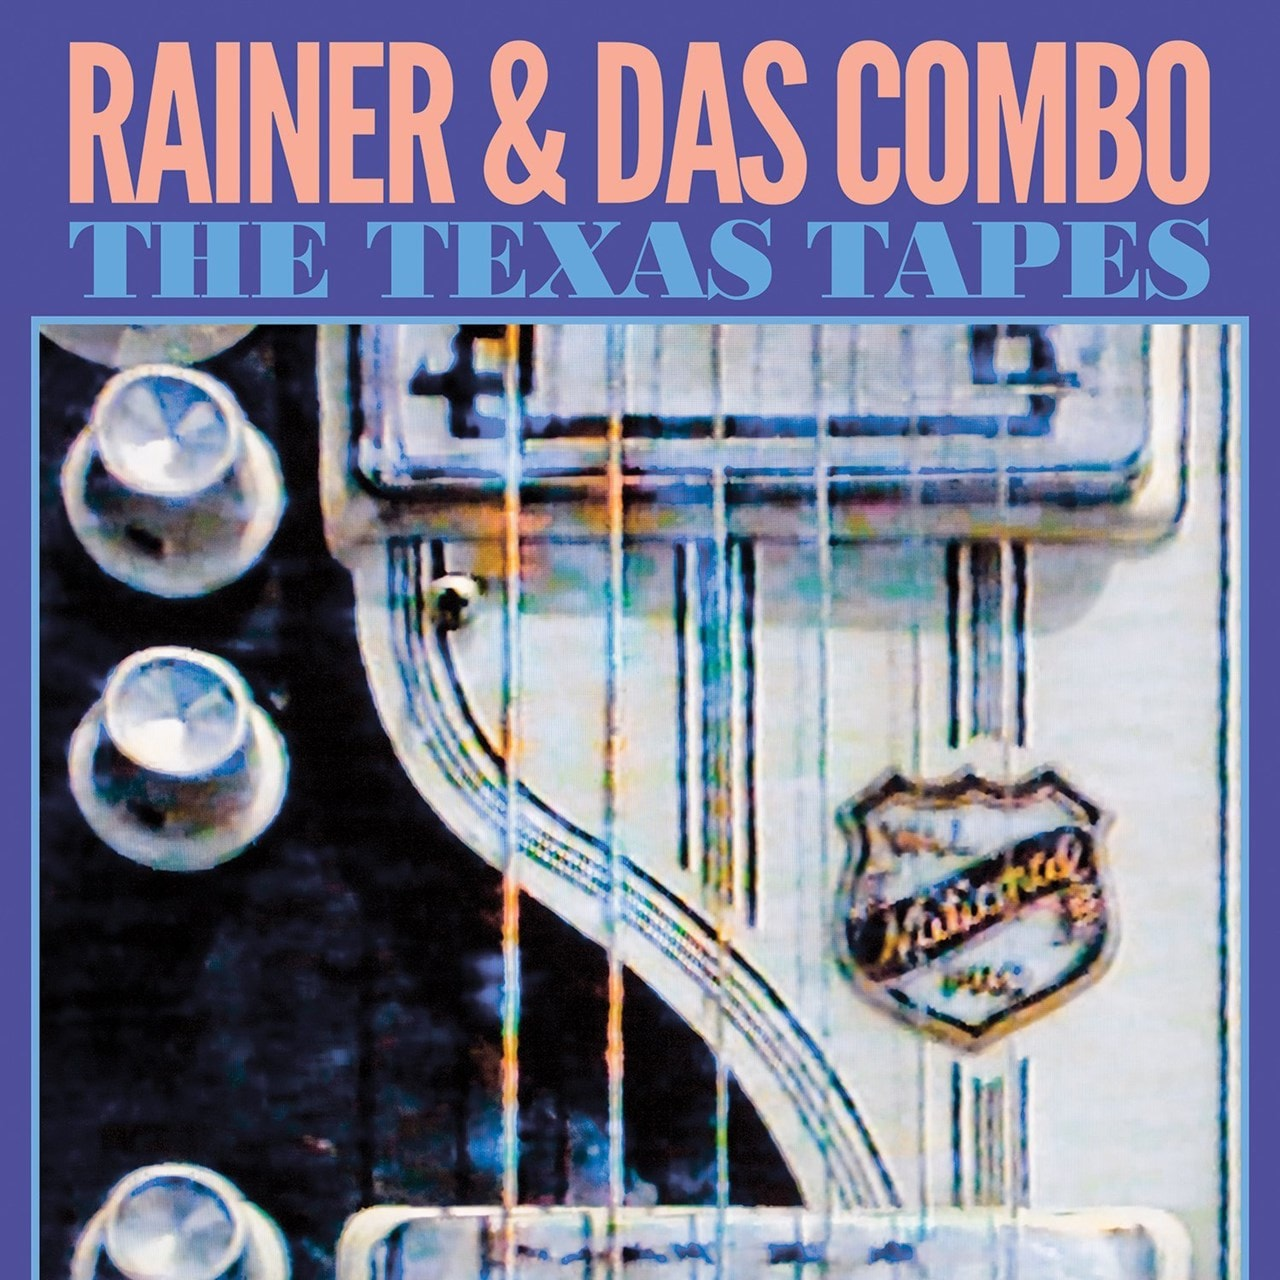 The Texas Tapes - 1